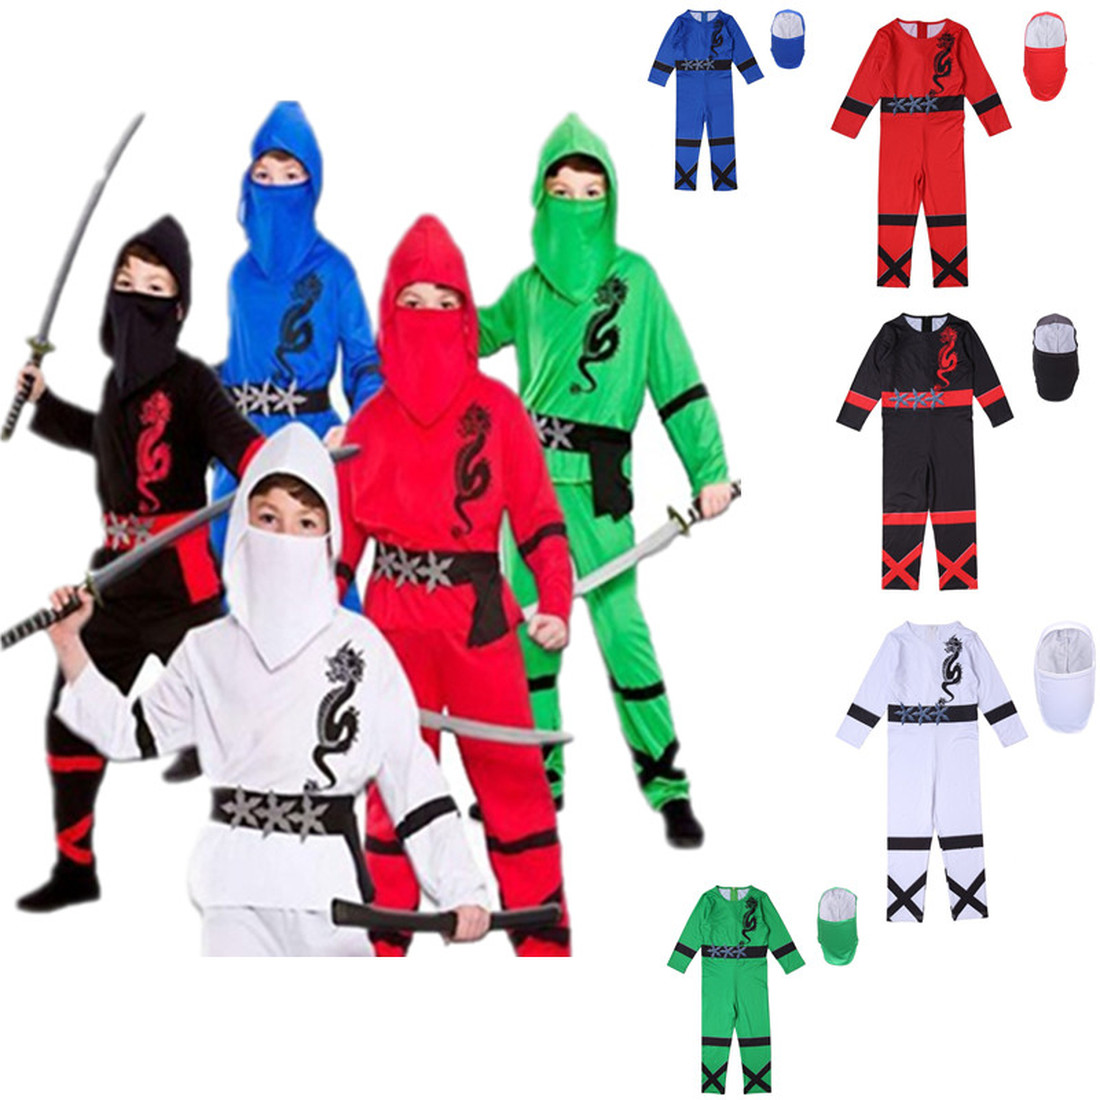 Kids Ninjago Cosplay Costume Boys Clothes Children Halloween Party Dress Up Costume Kids Ninja Cosplay Superhero Jumpsuits Sets